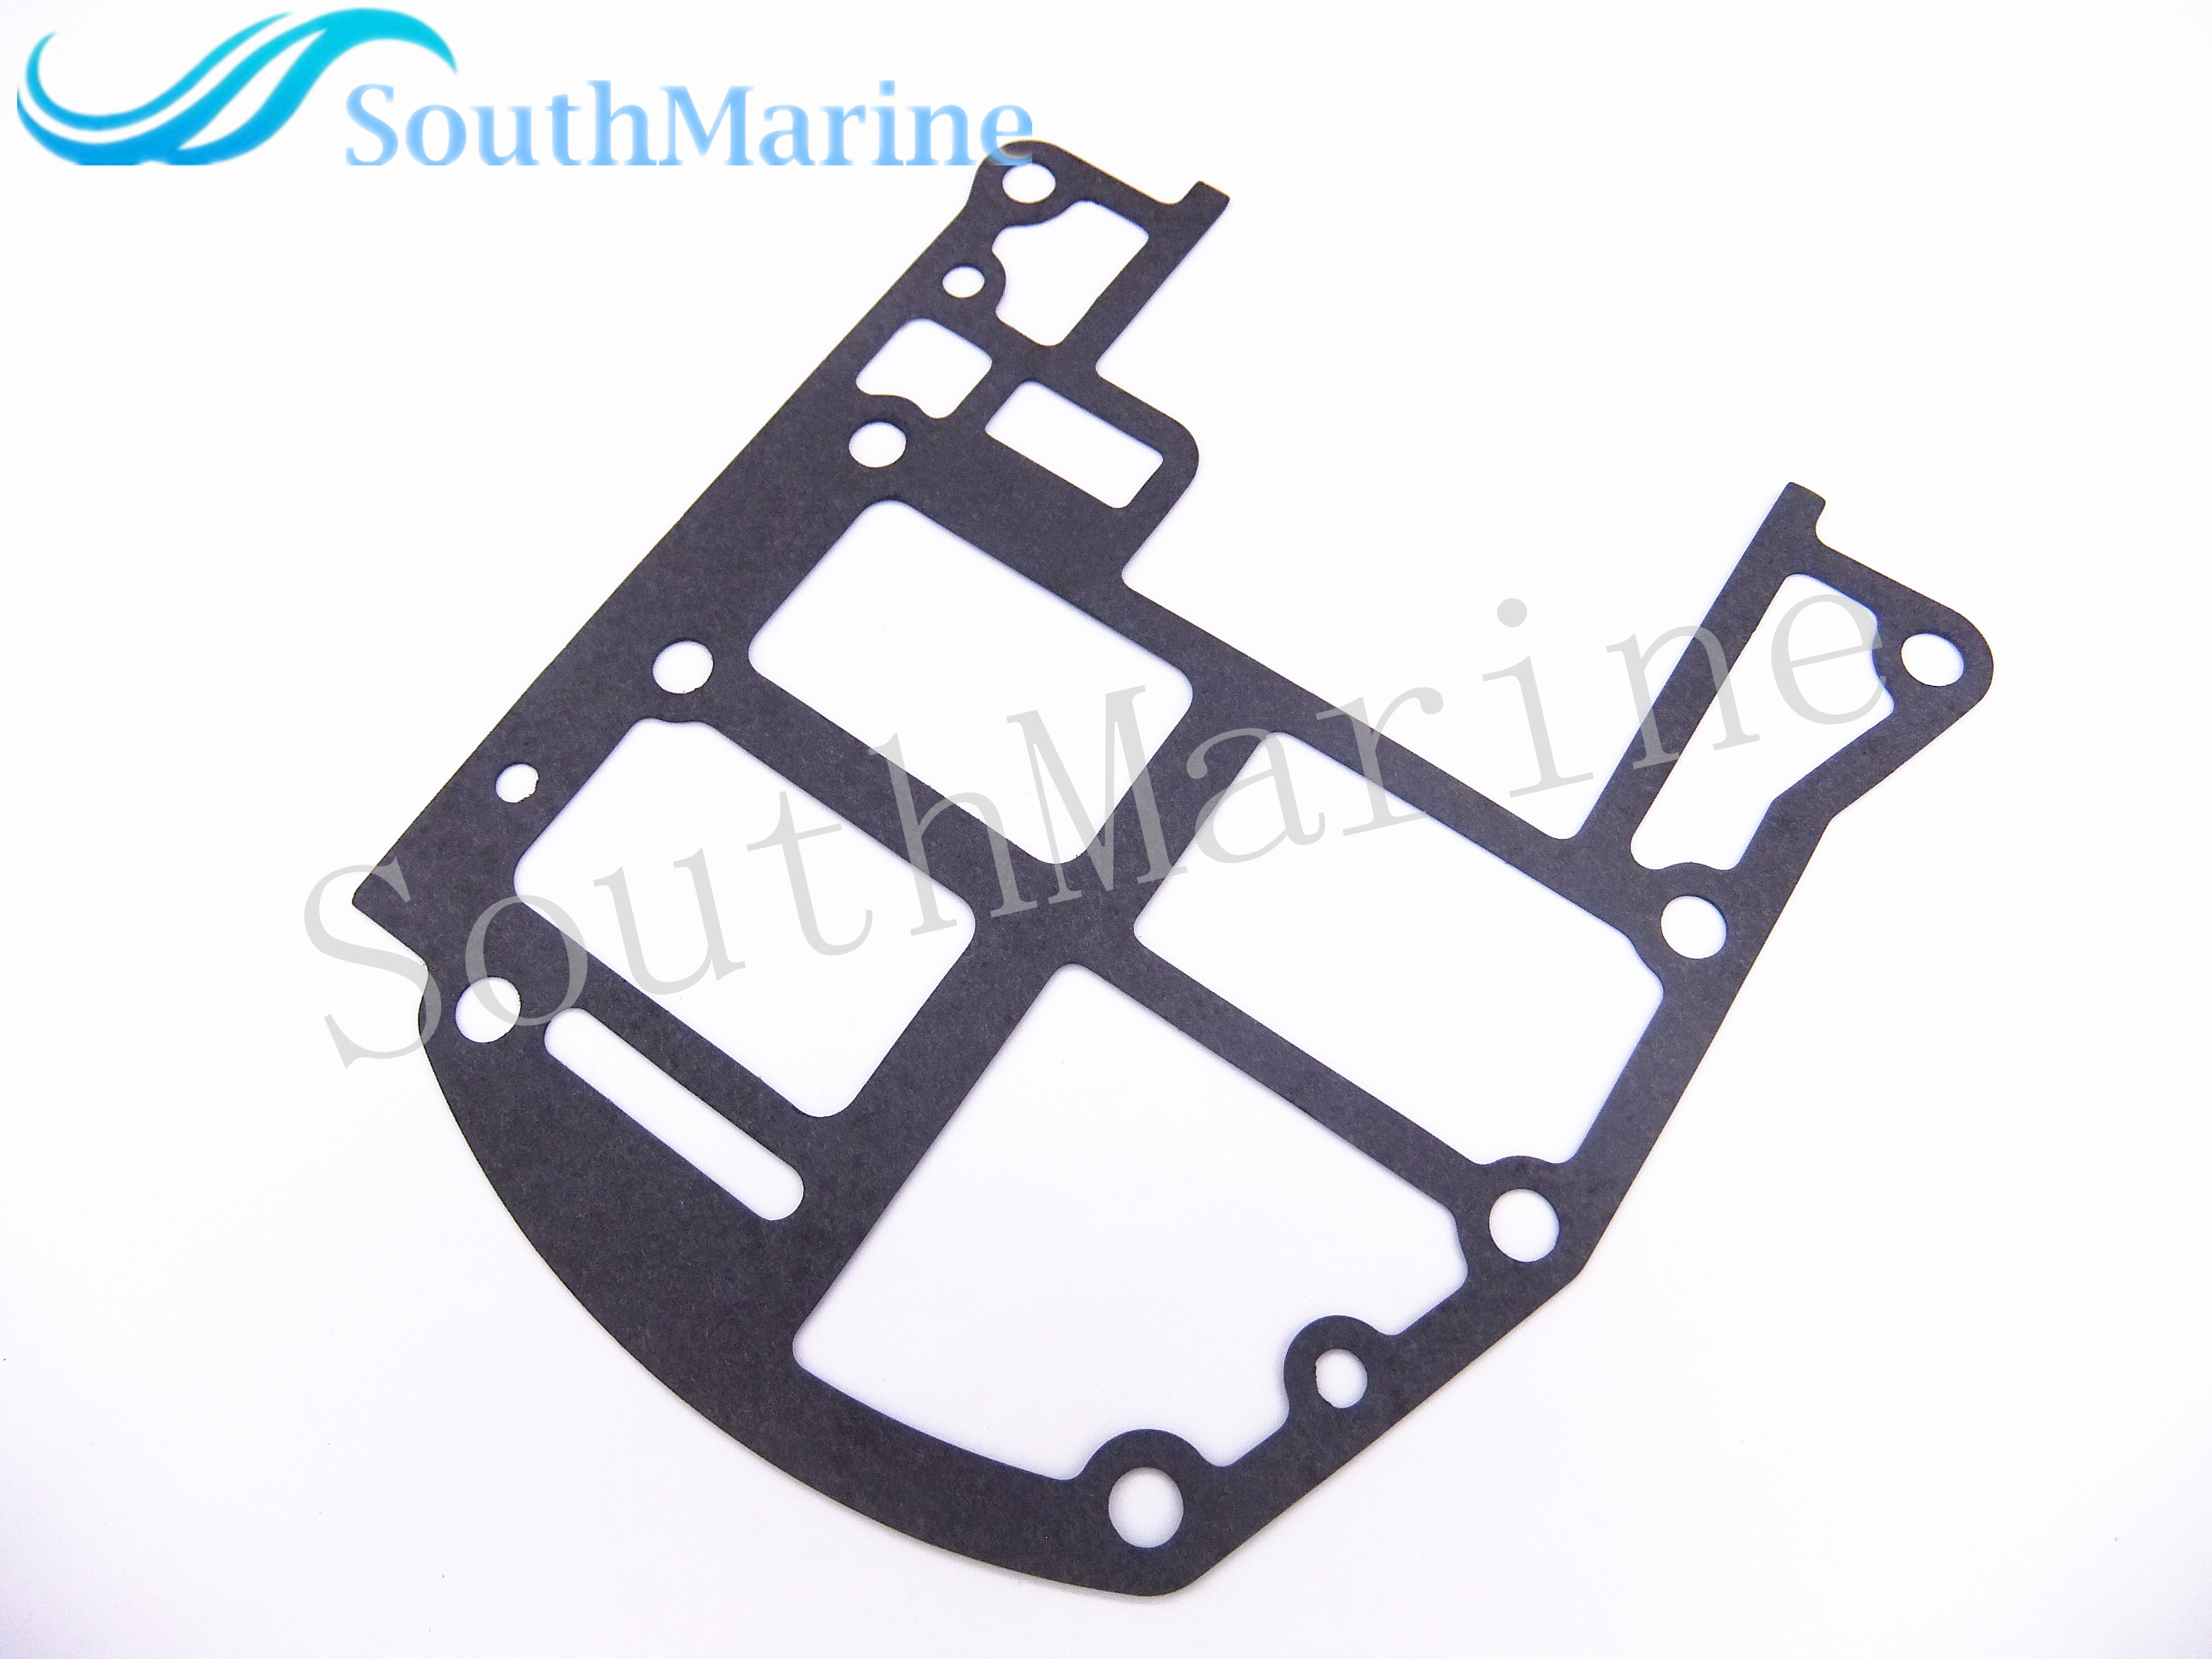 Boat Motor 6f5-45113-a0-00 6f5-45113-00-00 Upper Casing Gasket For Yamaha Outboard C40 E40 40hp 36hp Atv,rv,boat & Other Vehicle